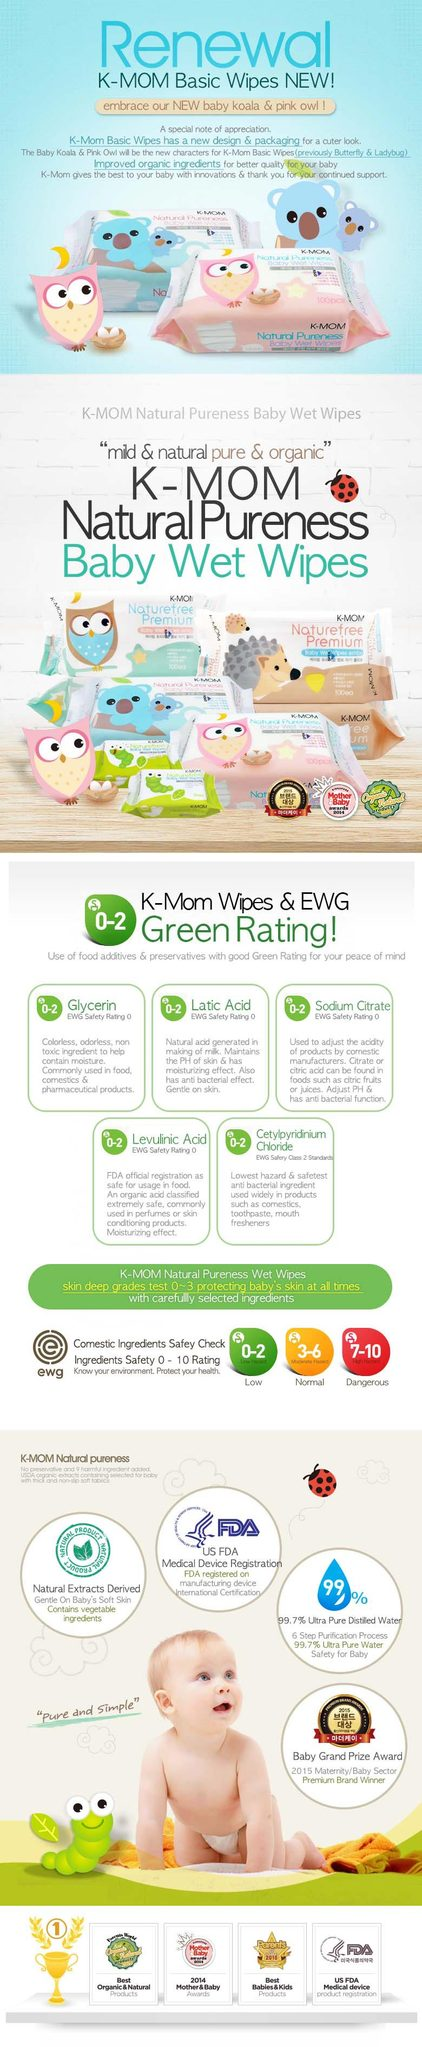 K-MOM_wet-wipes_new_ENG_1_2048x2048.jpg